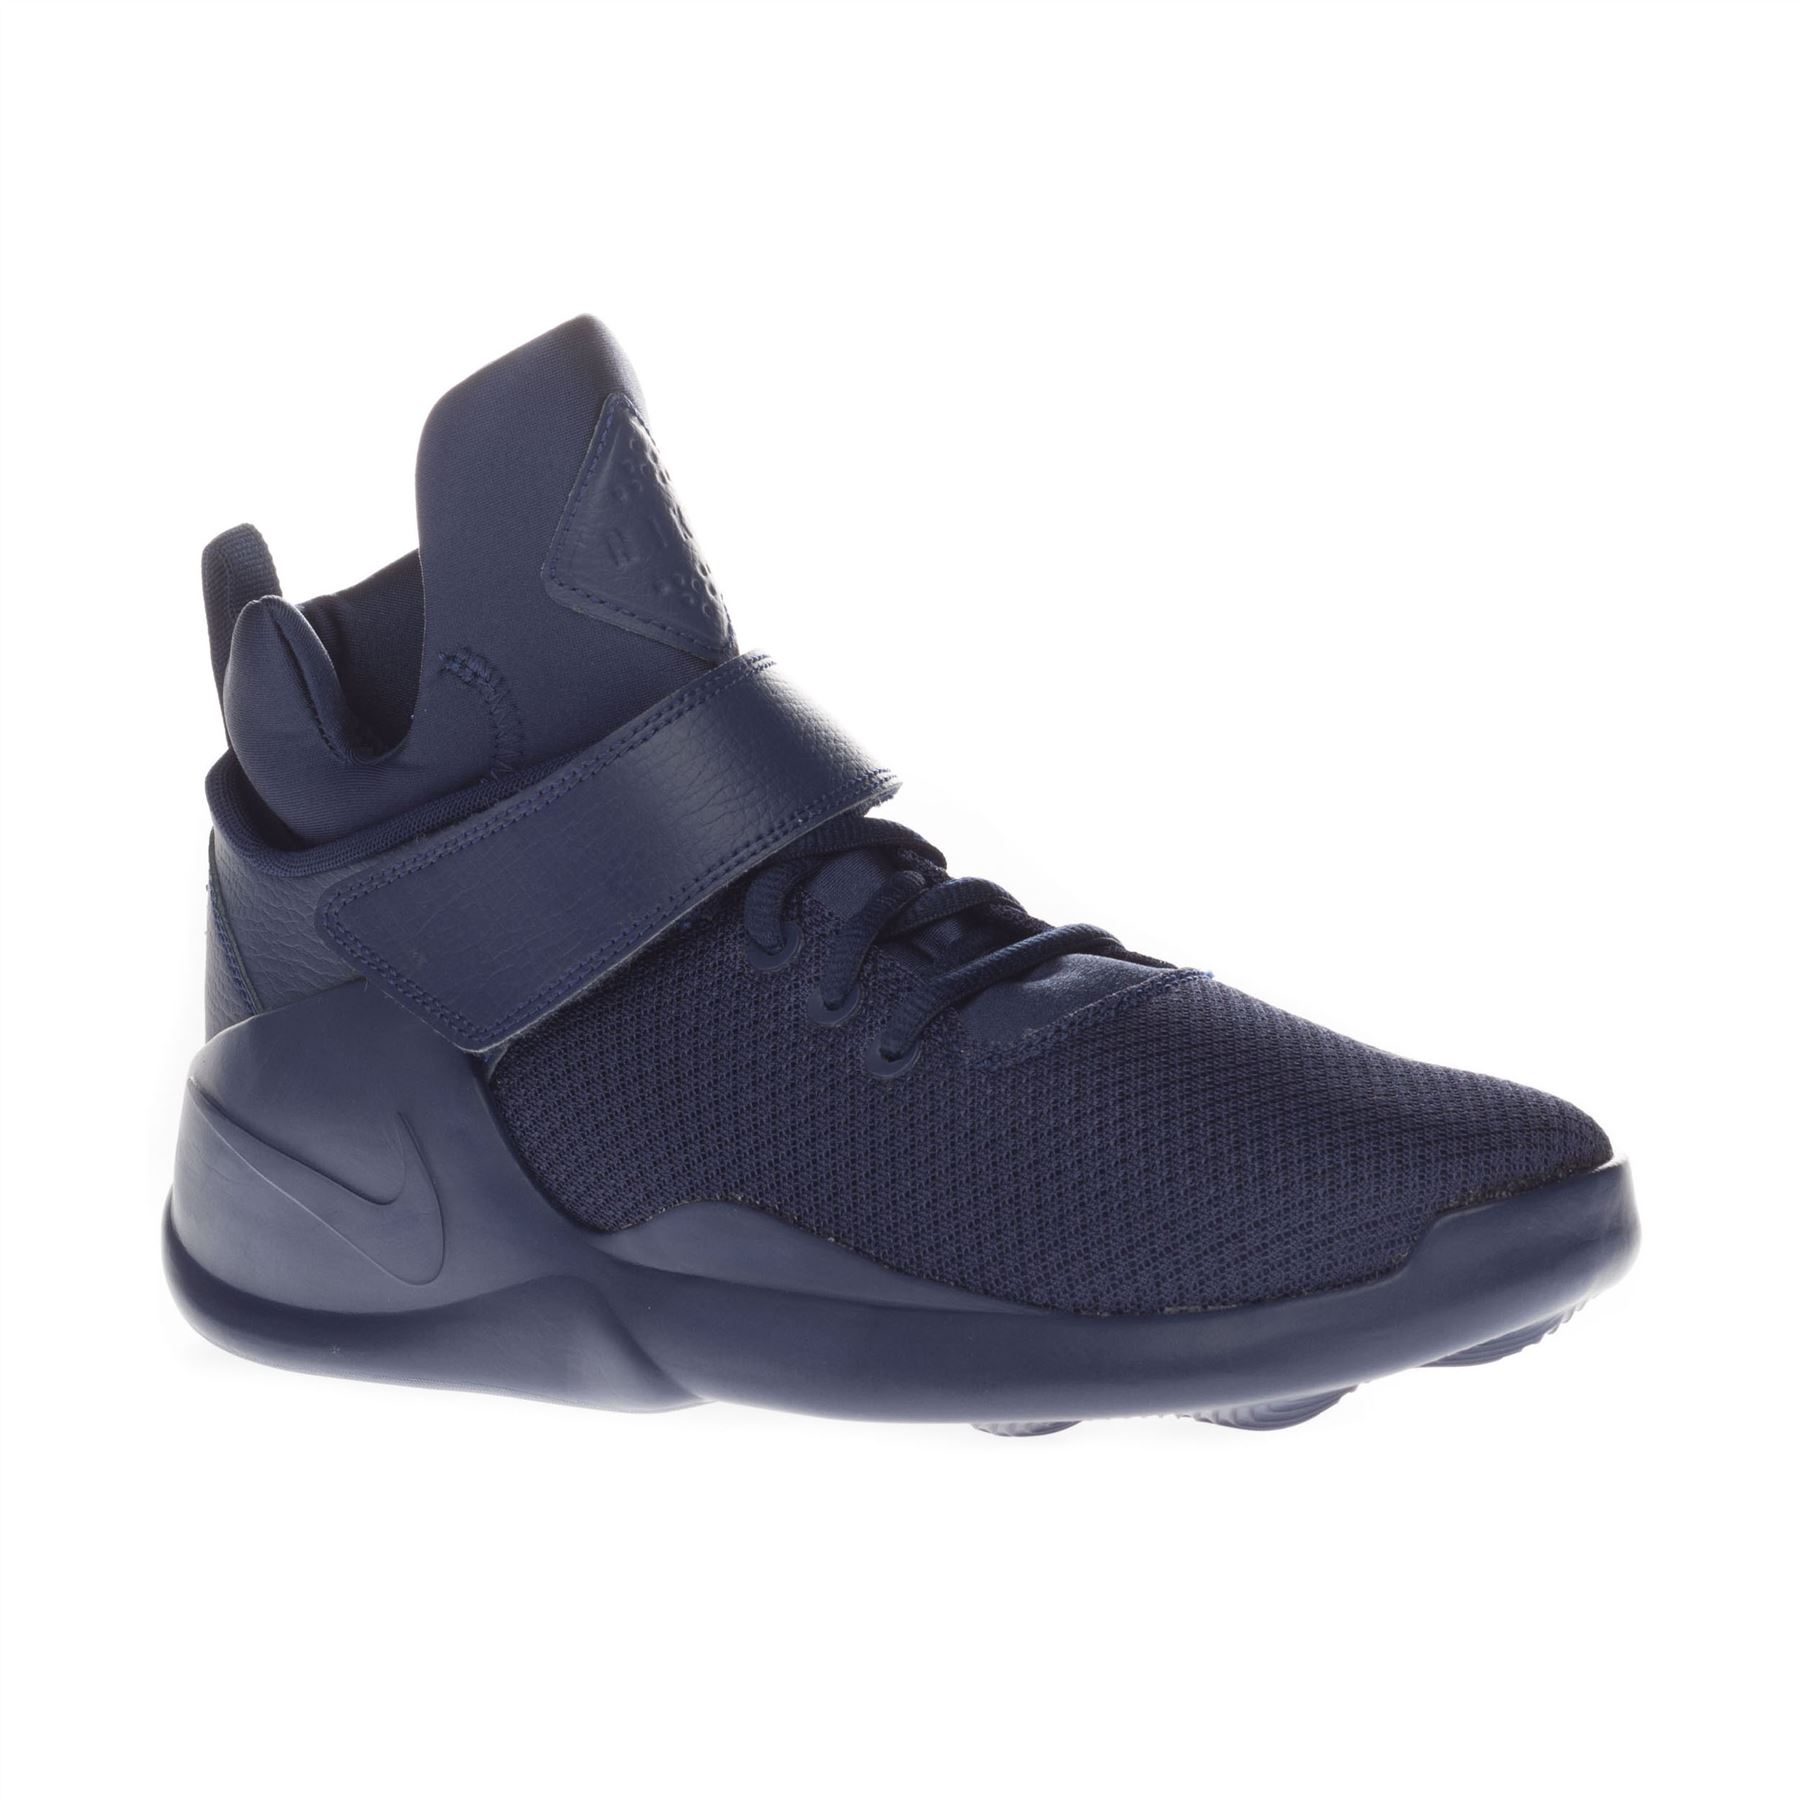 Nike Shoes With Strap Over Lace Mens